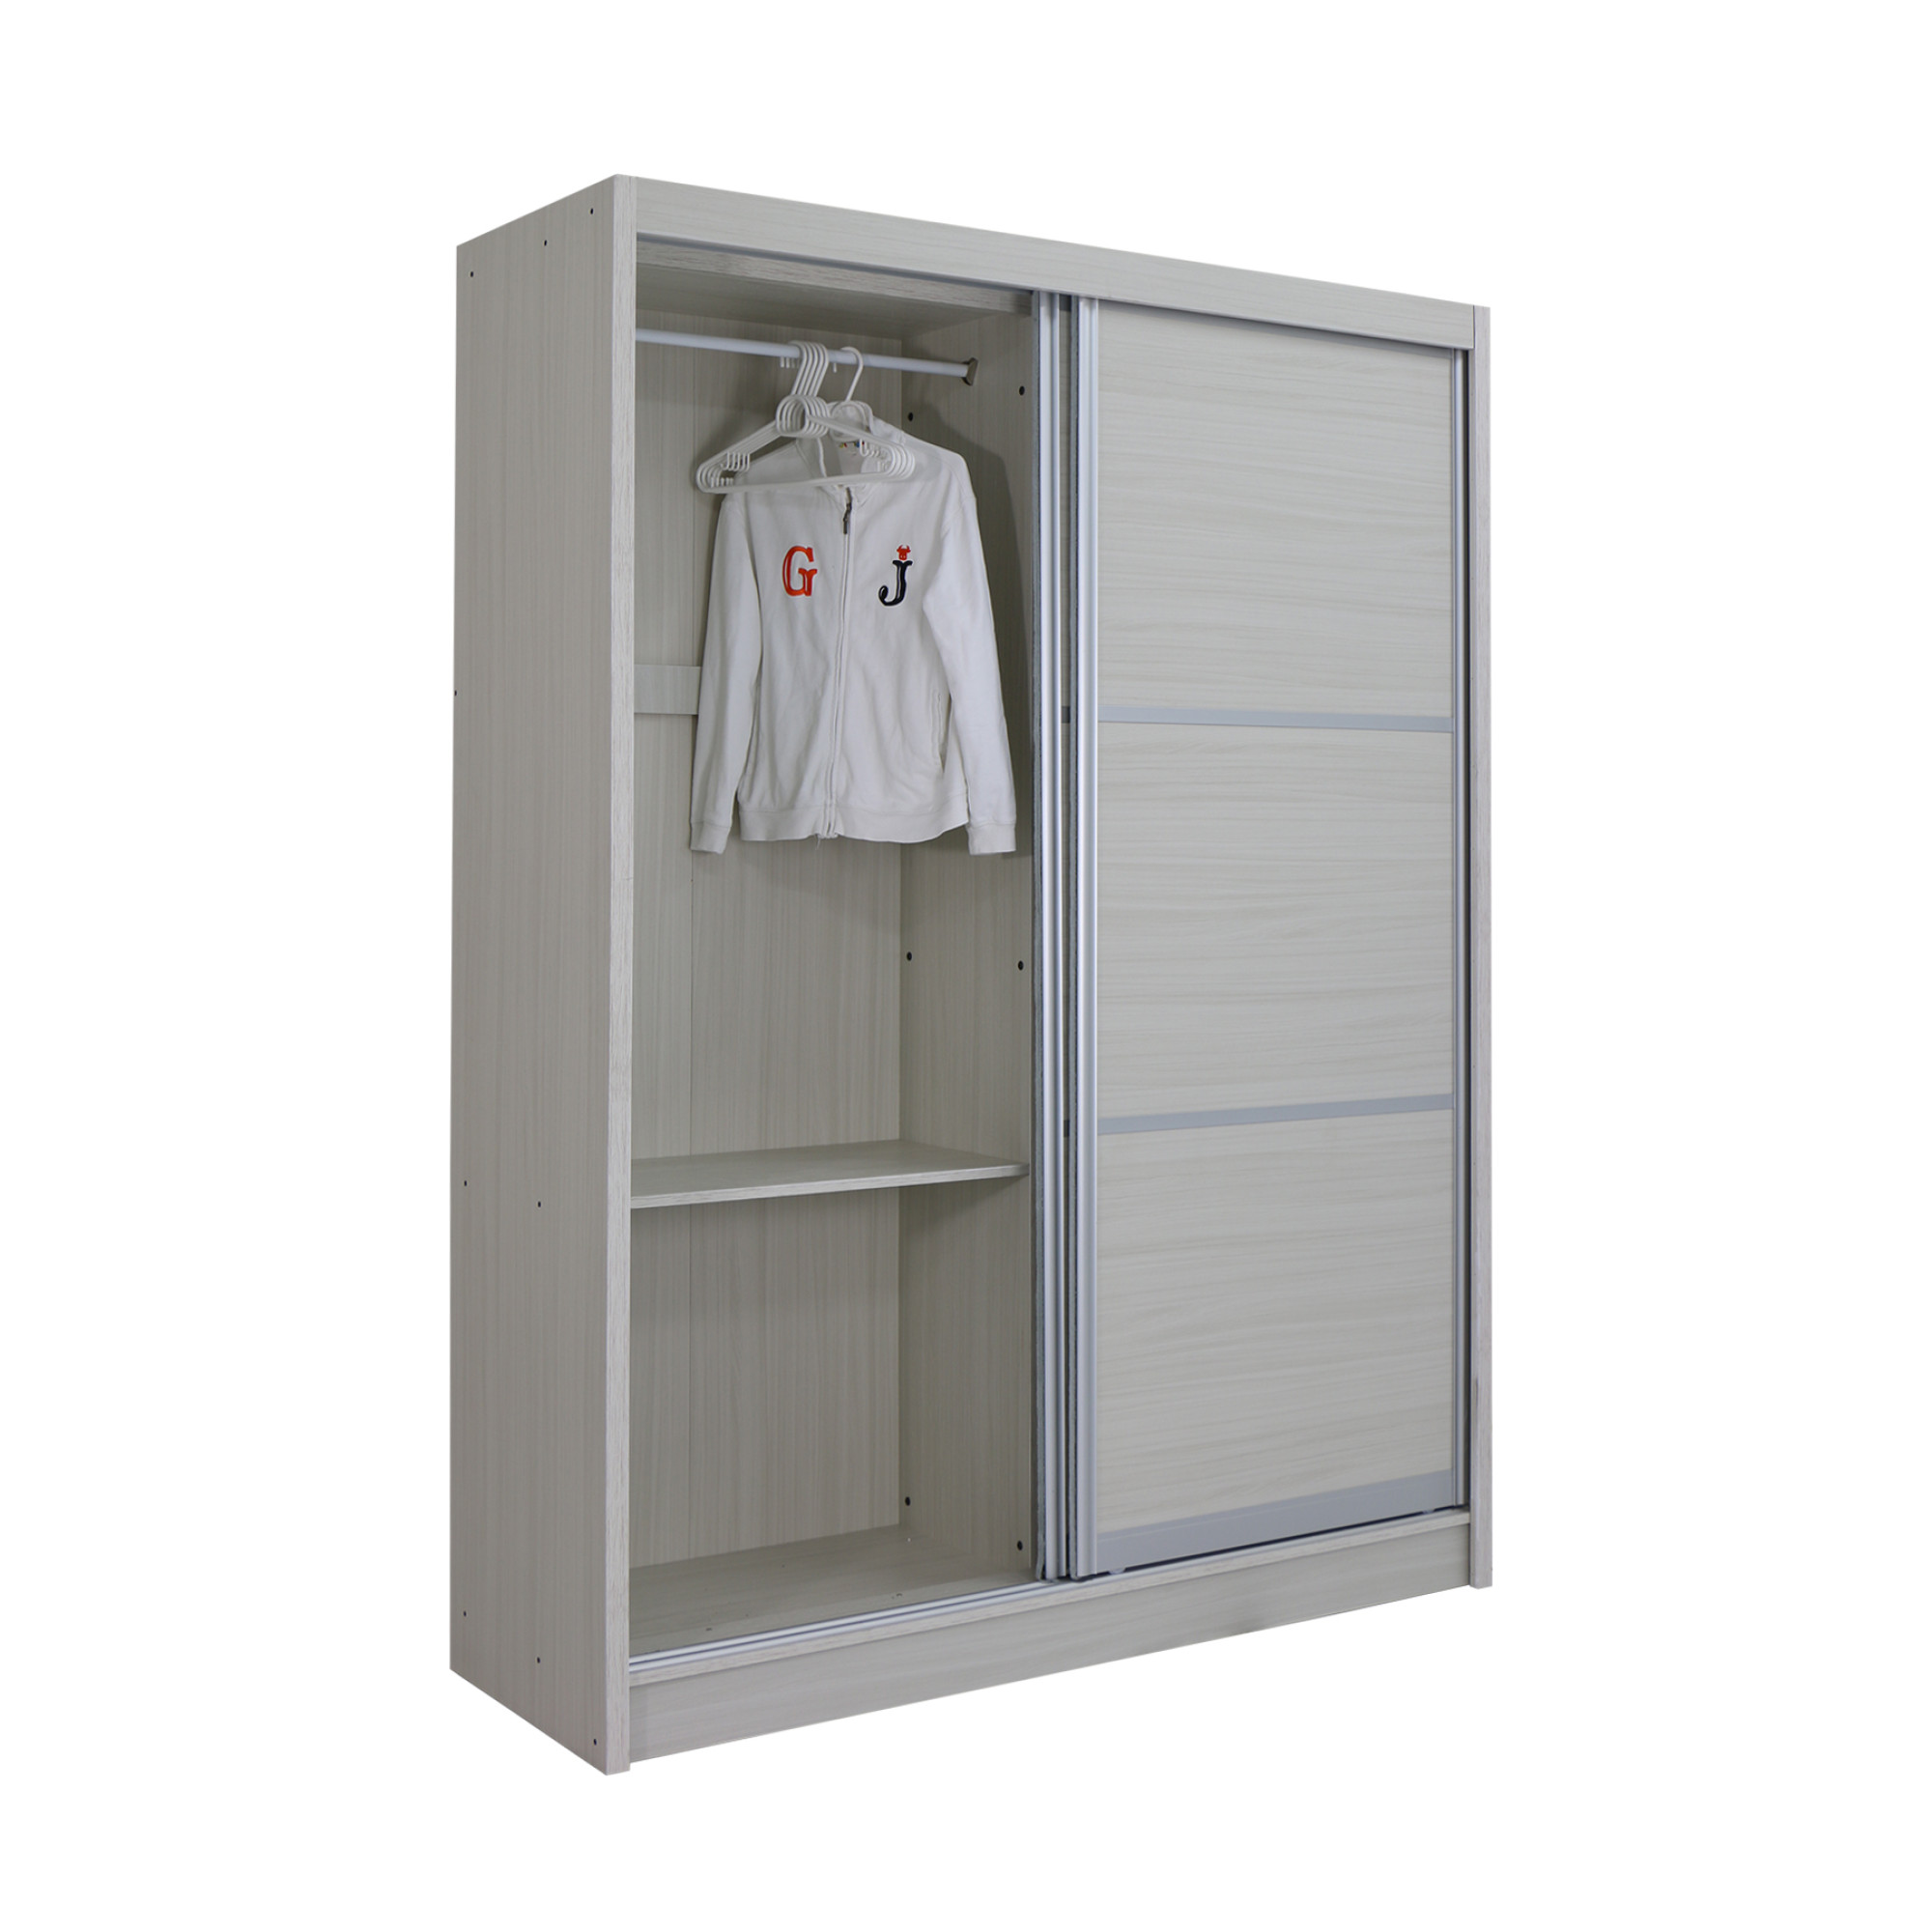 abbess very an door order the space vertical fit and has for customers chamber its requirements easy access slide developed in specific side with of cube our to loading